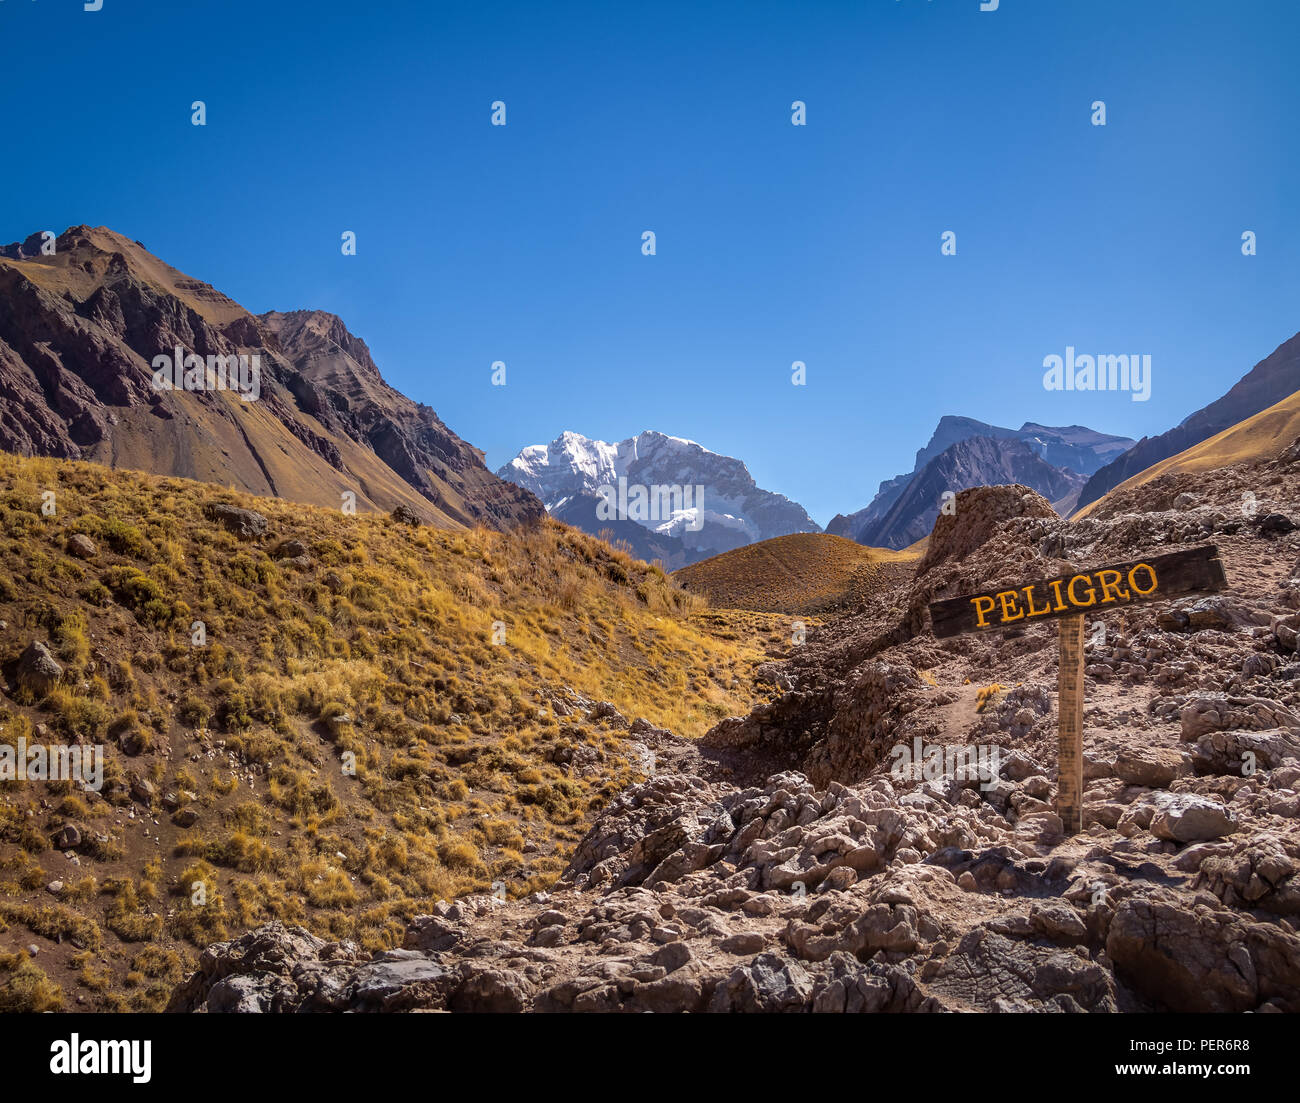 Aconcagua south wall view and danger sign from Aconcagua Provincial Park in Cordillera de Los Andes - Mendoza Province, Argentina - Stock Image